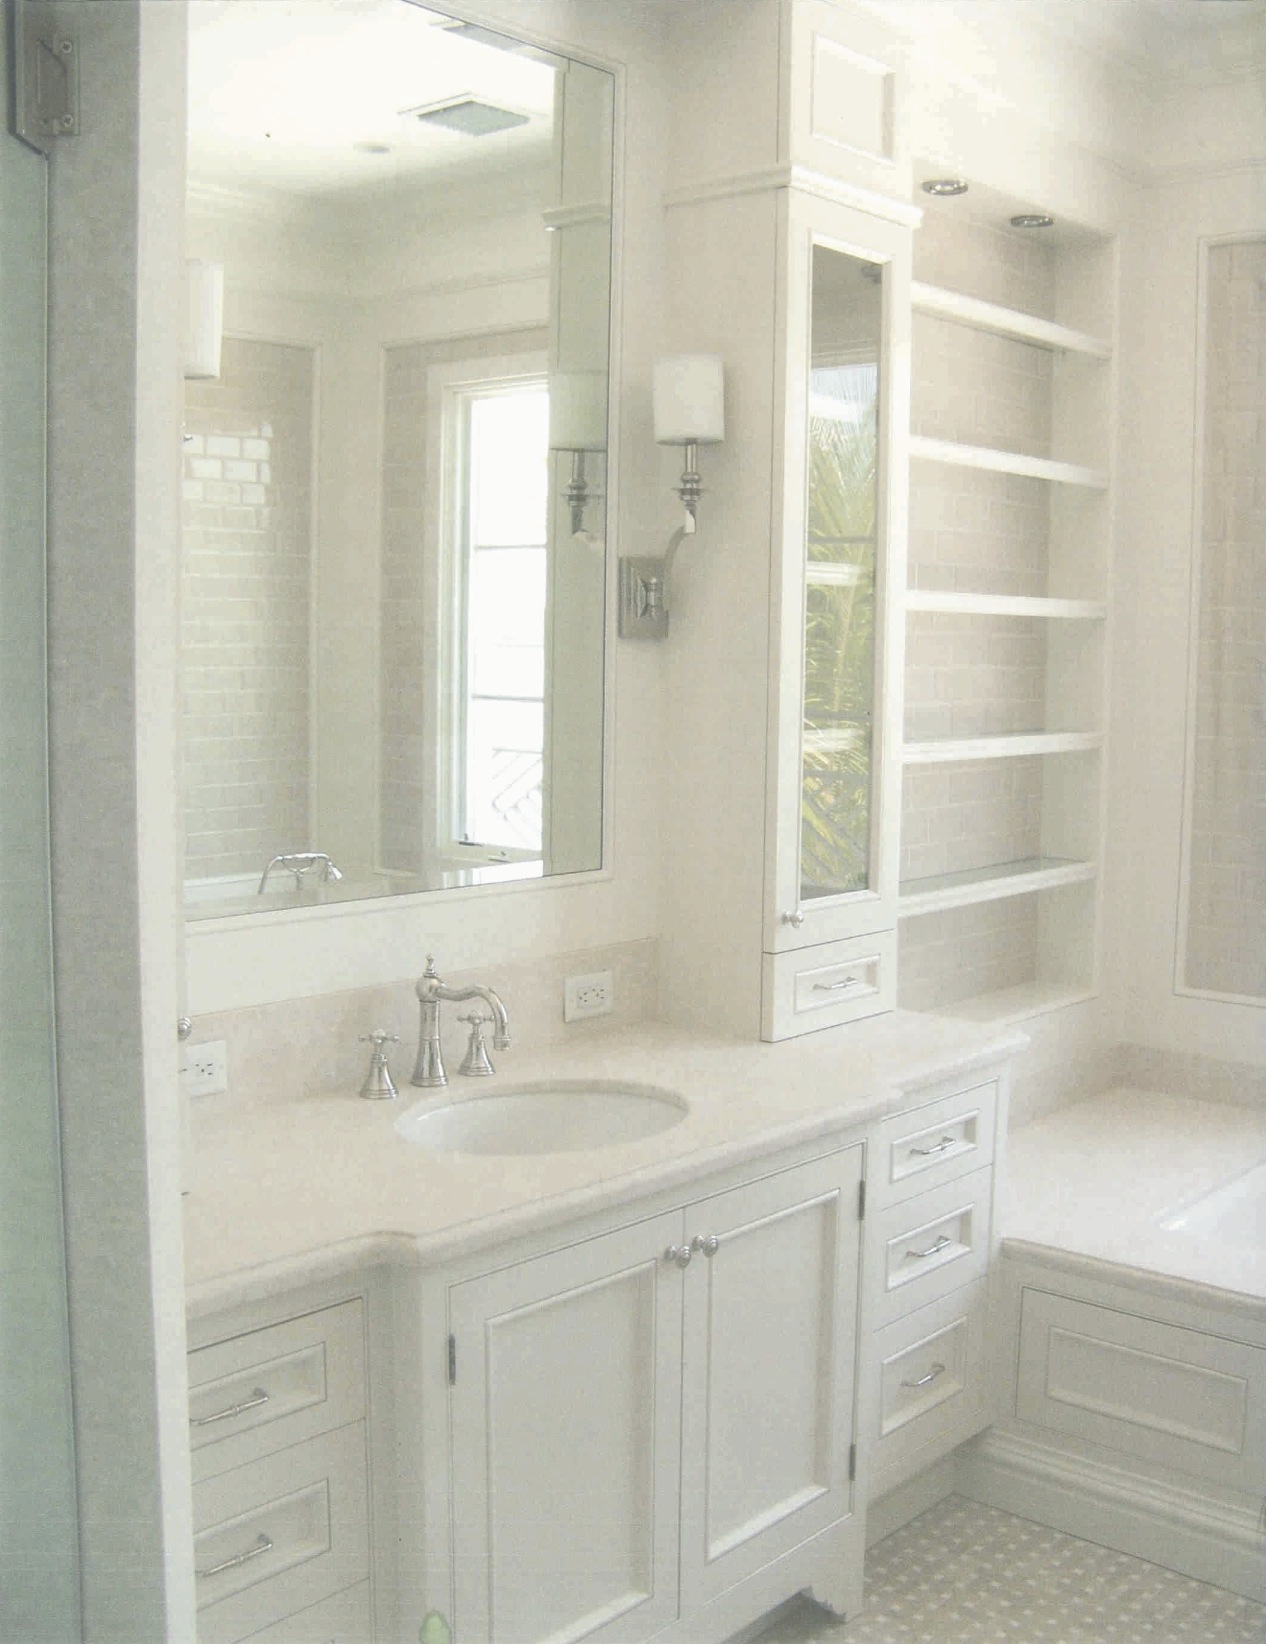 Vanities Jefferson Woodworking LLC Architectural Woodworking - Bathroom vanities palm beach